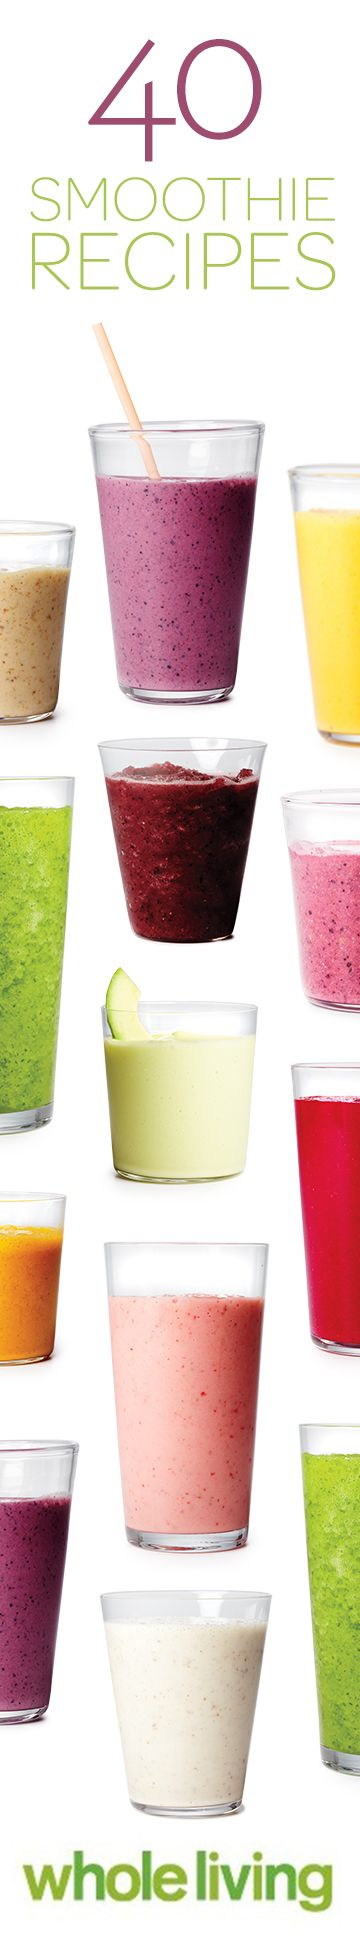 40 smoothie recipes